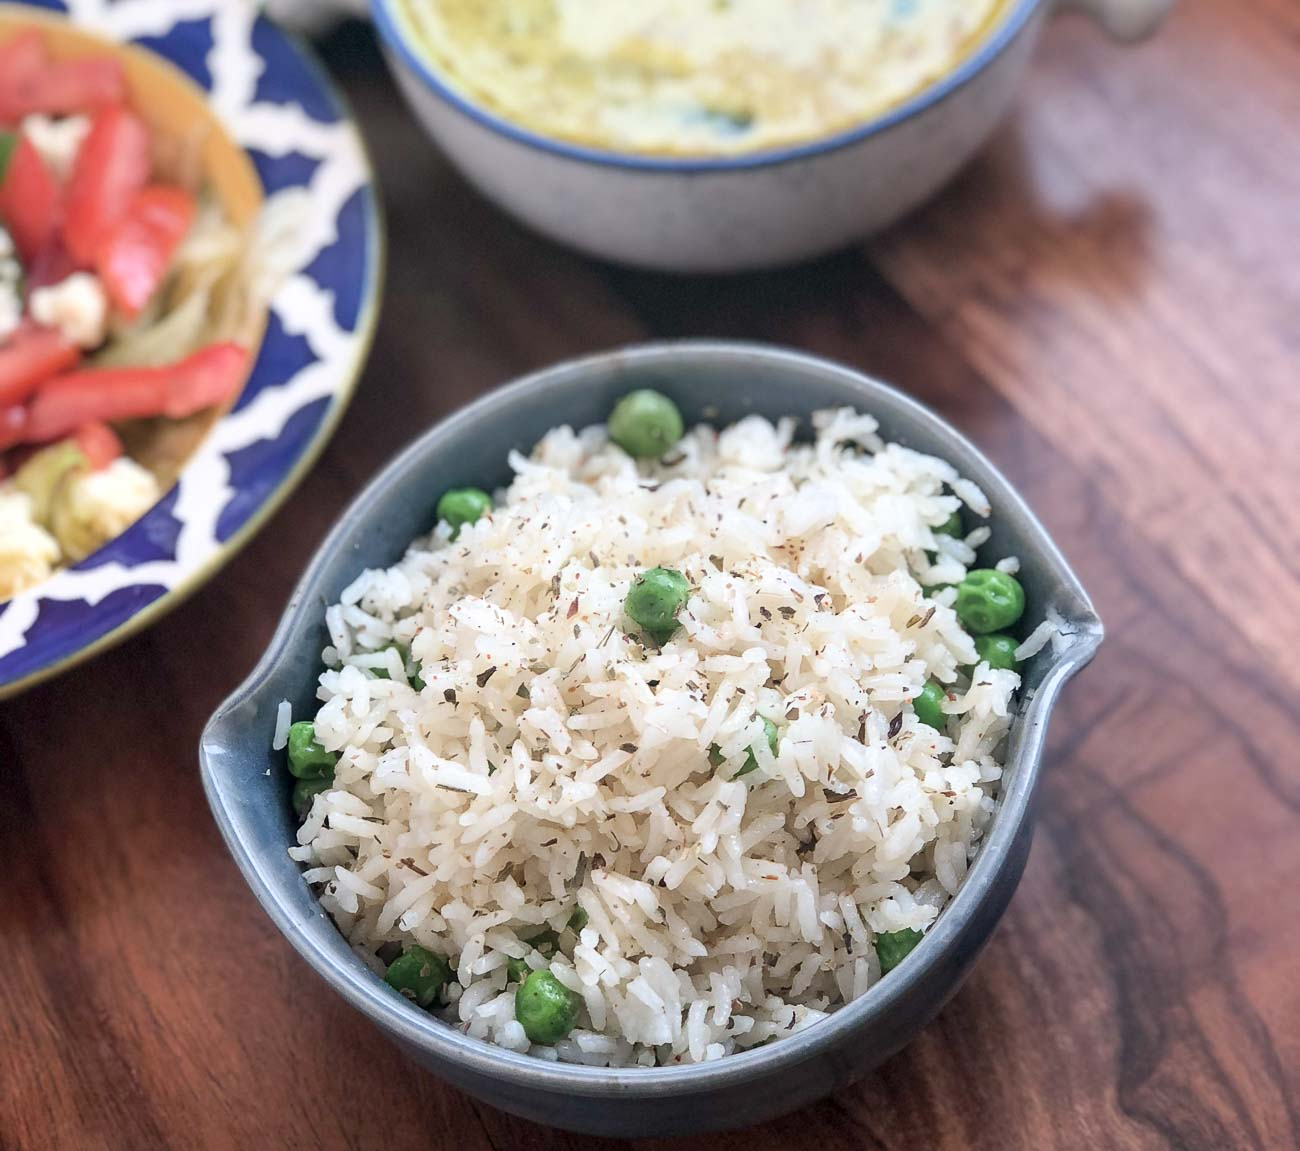 Herbed Buttered Rice Recipe With Green Peas